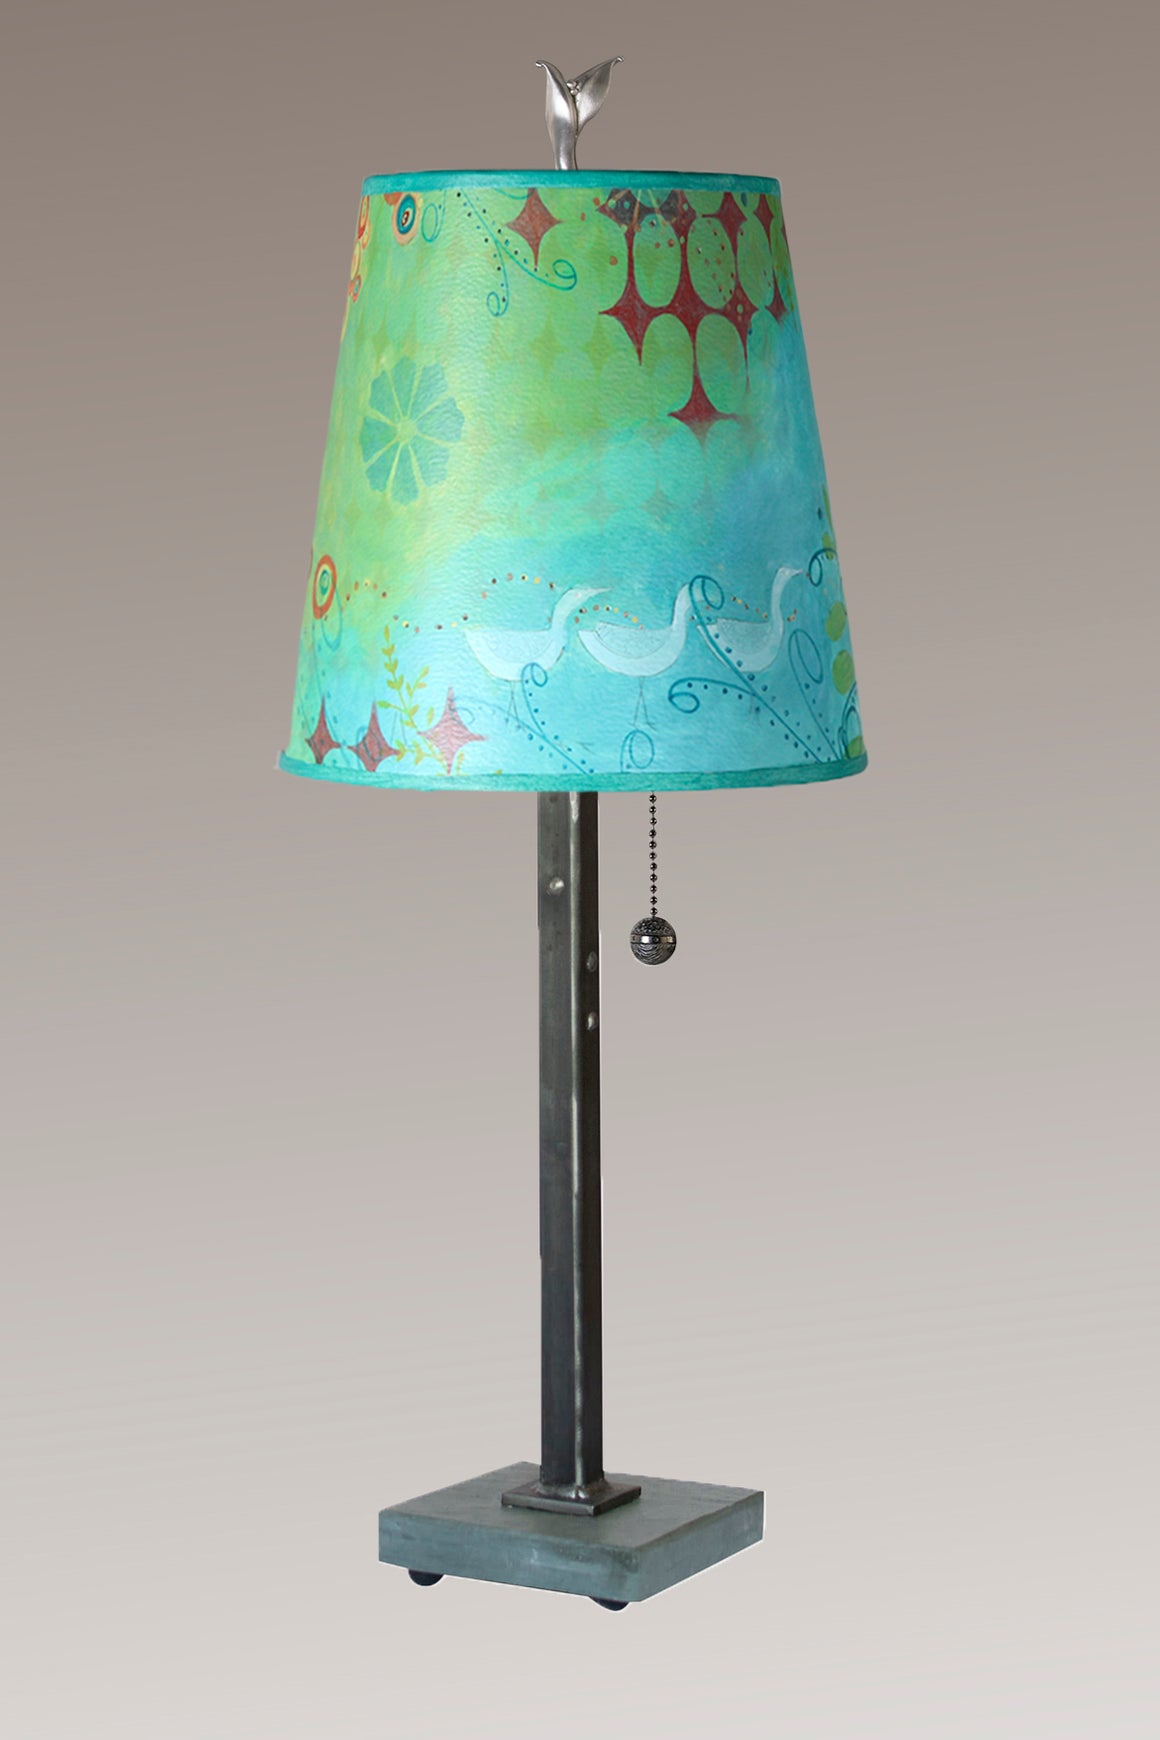 Steel Table Lamp on Vermont Slate Base with Small Drum Shade in Dream Bird